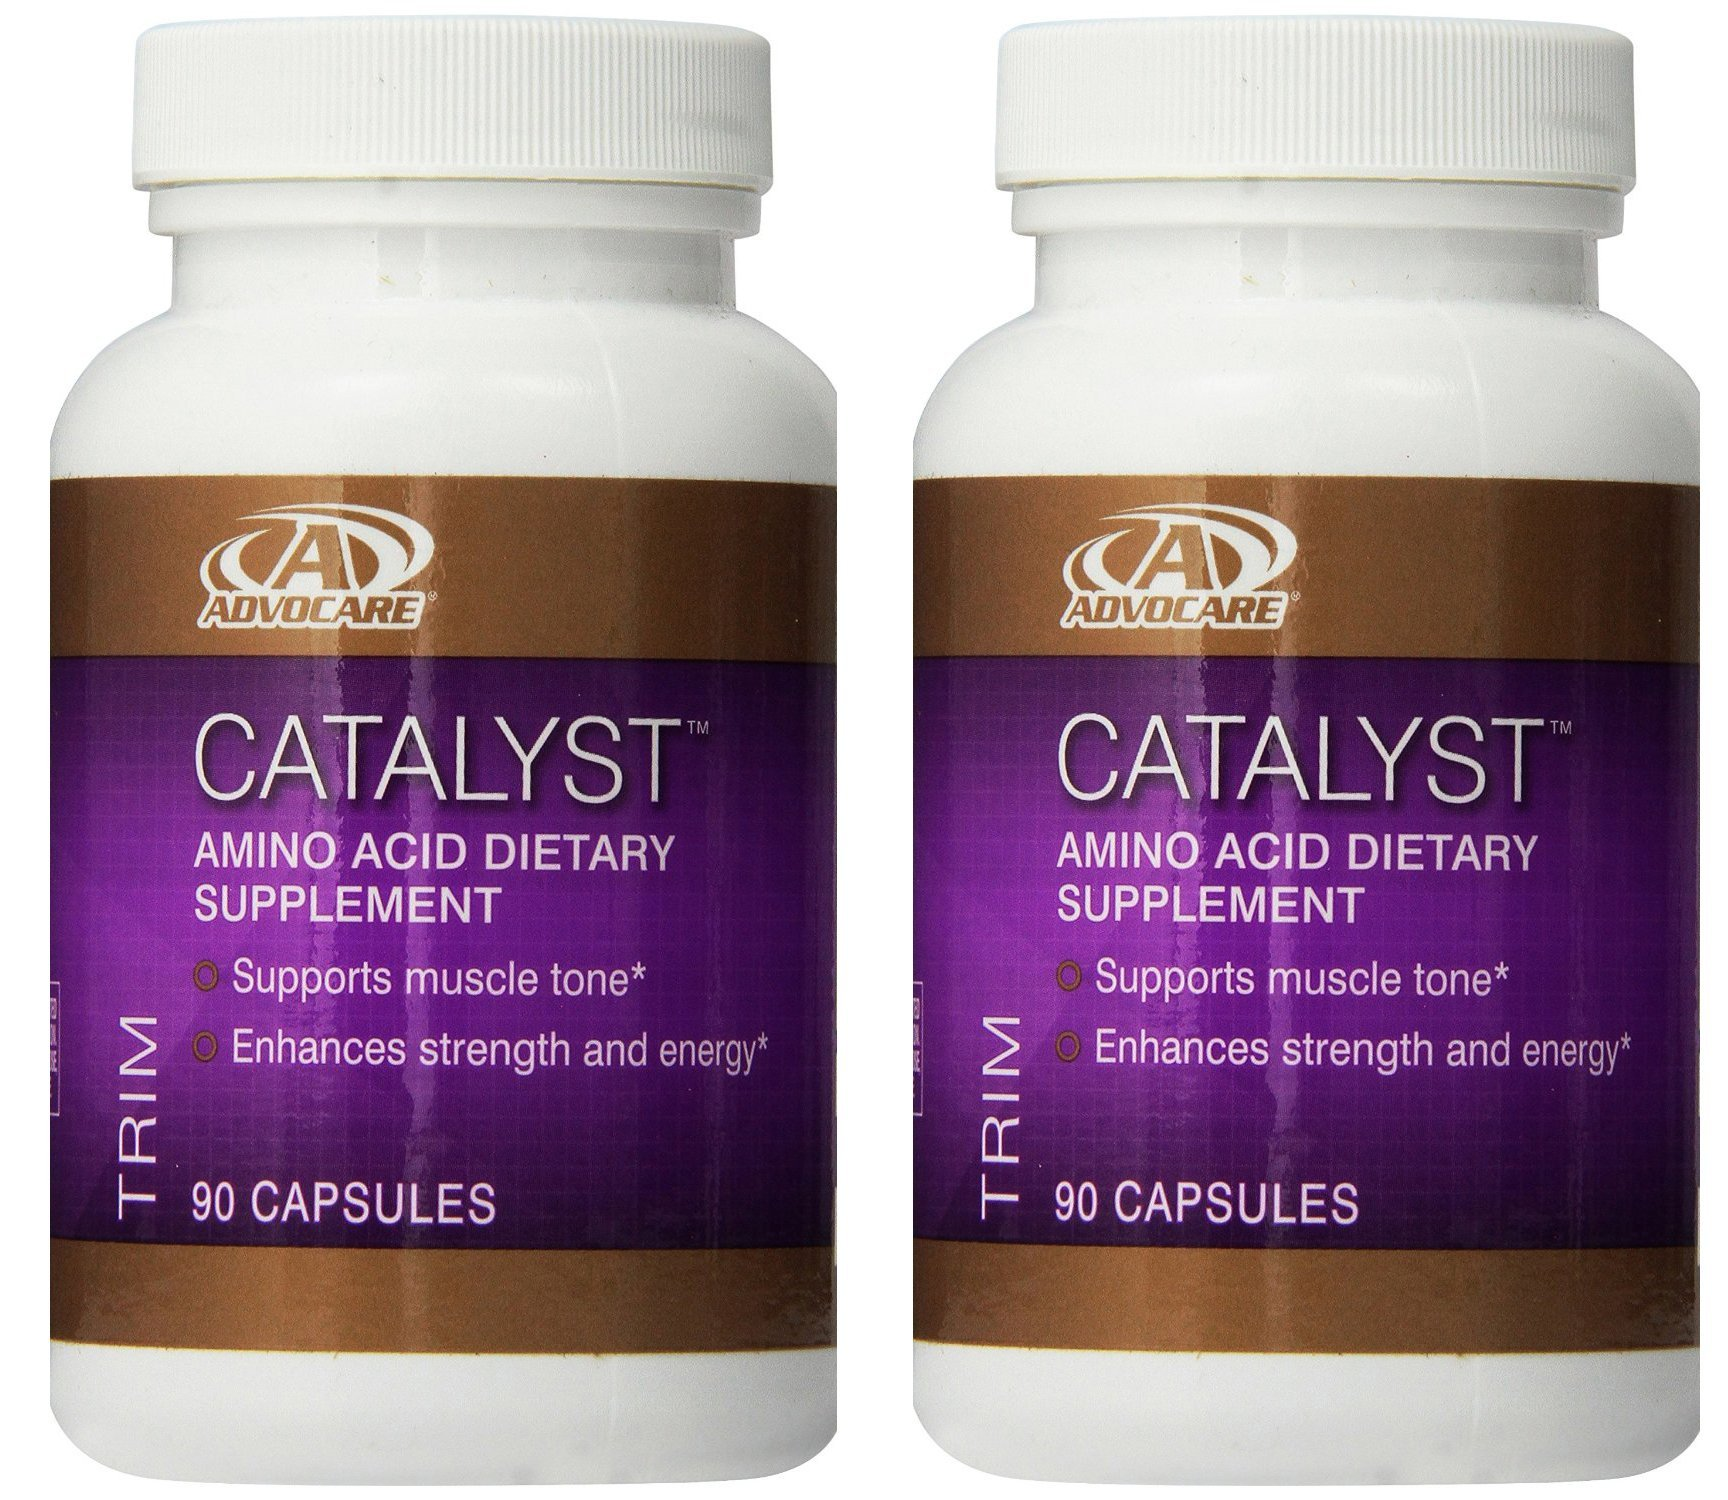 Advocare Catalyst Amino Acid Dietary Supplement, 2 Bottles, 90 Capsules